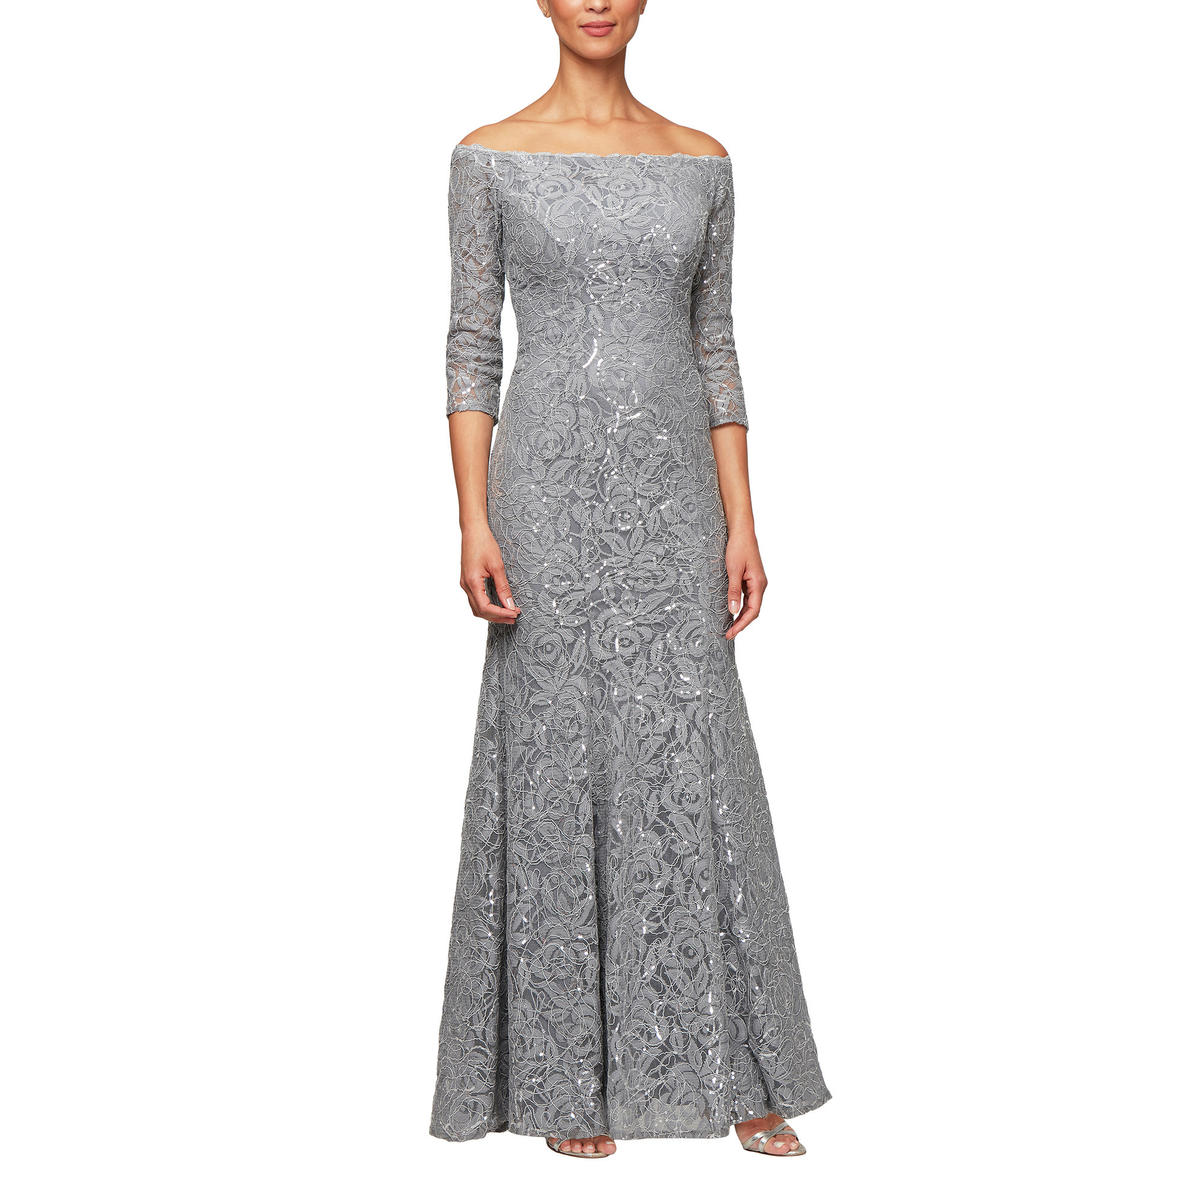 ALEX APPAREL GROUP INC - Long Sleeve Off Shoulder Lace gown